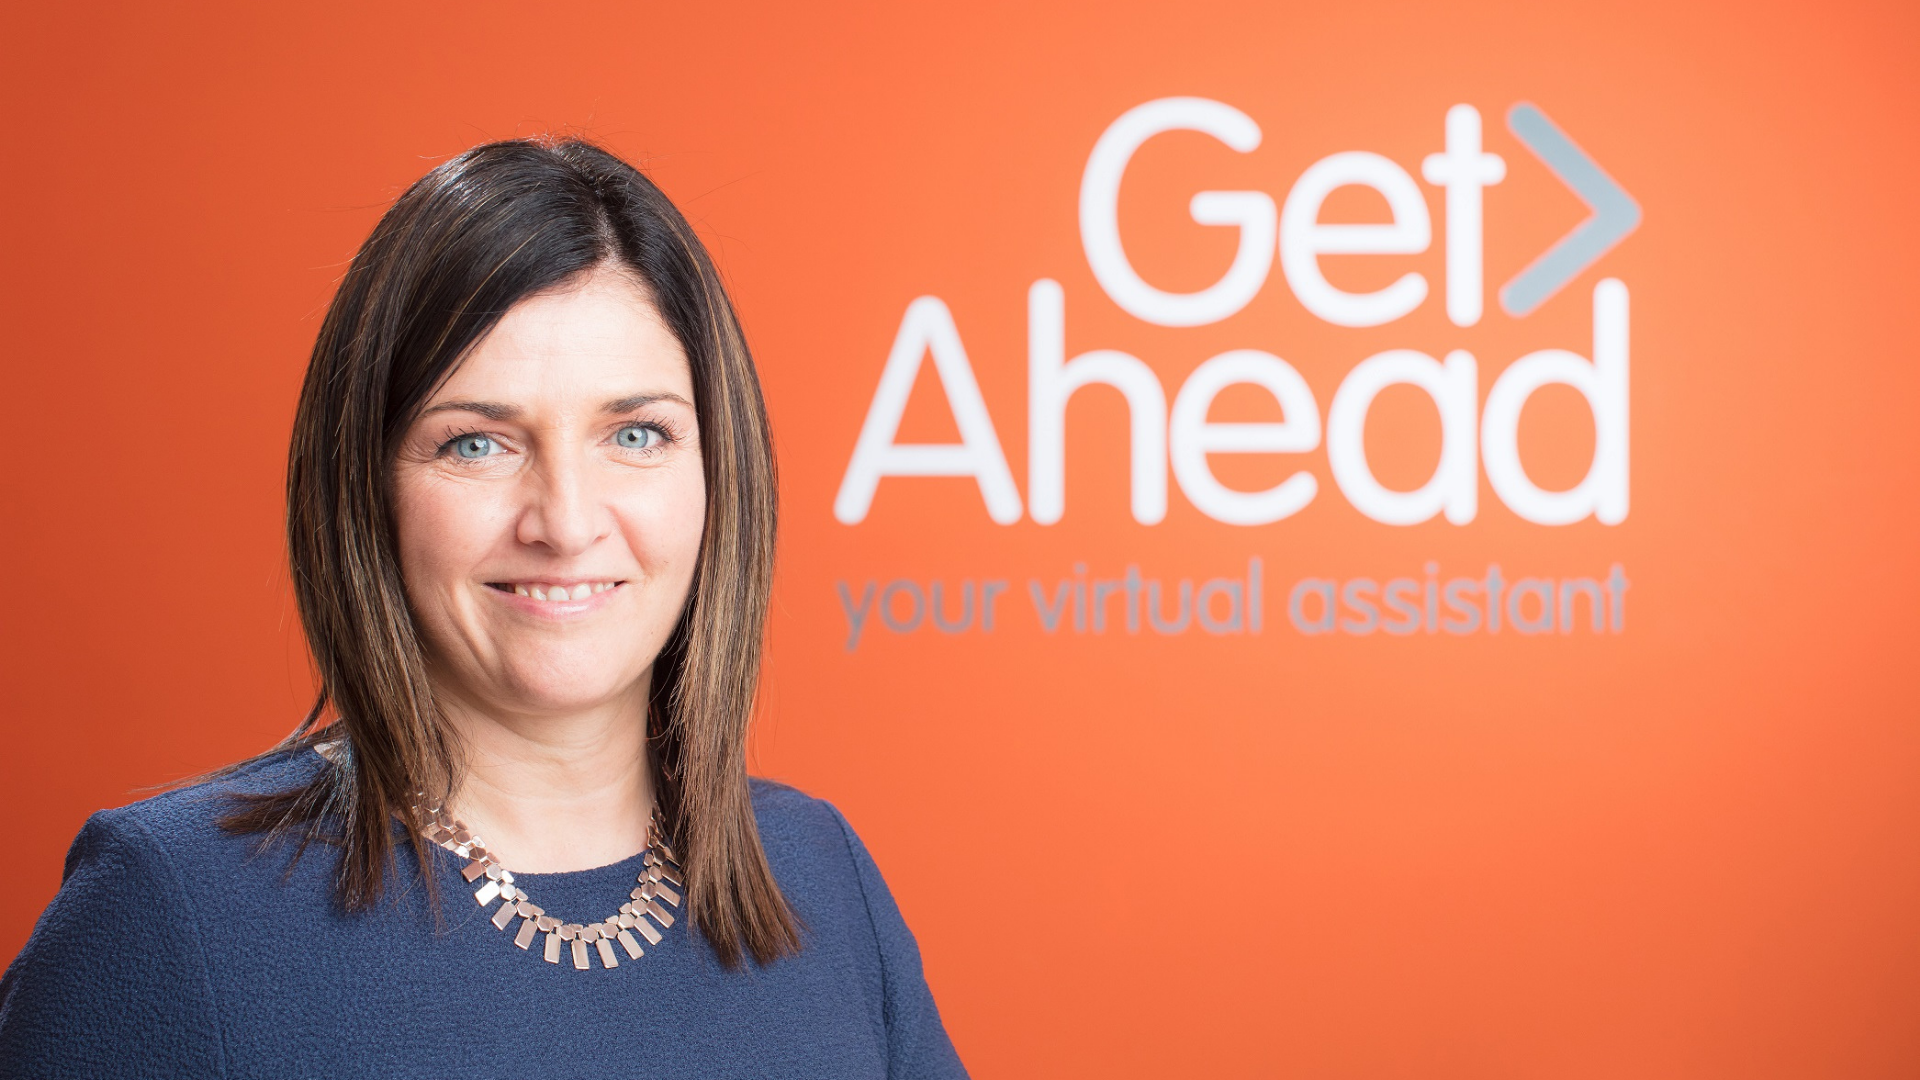 Yorkshire expansion: Get Ahead franchisee extends territory into York and Harrogate